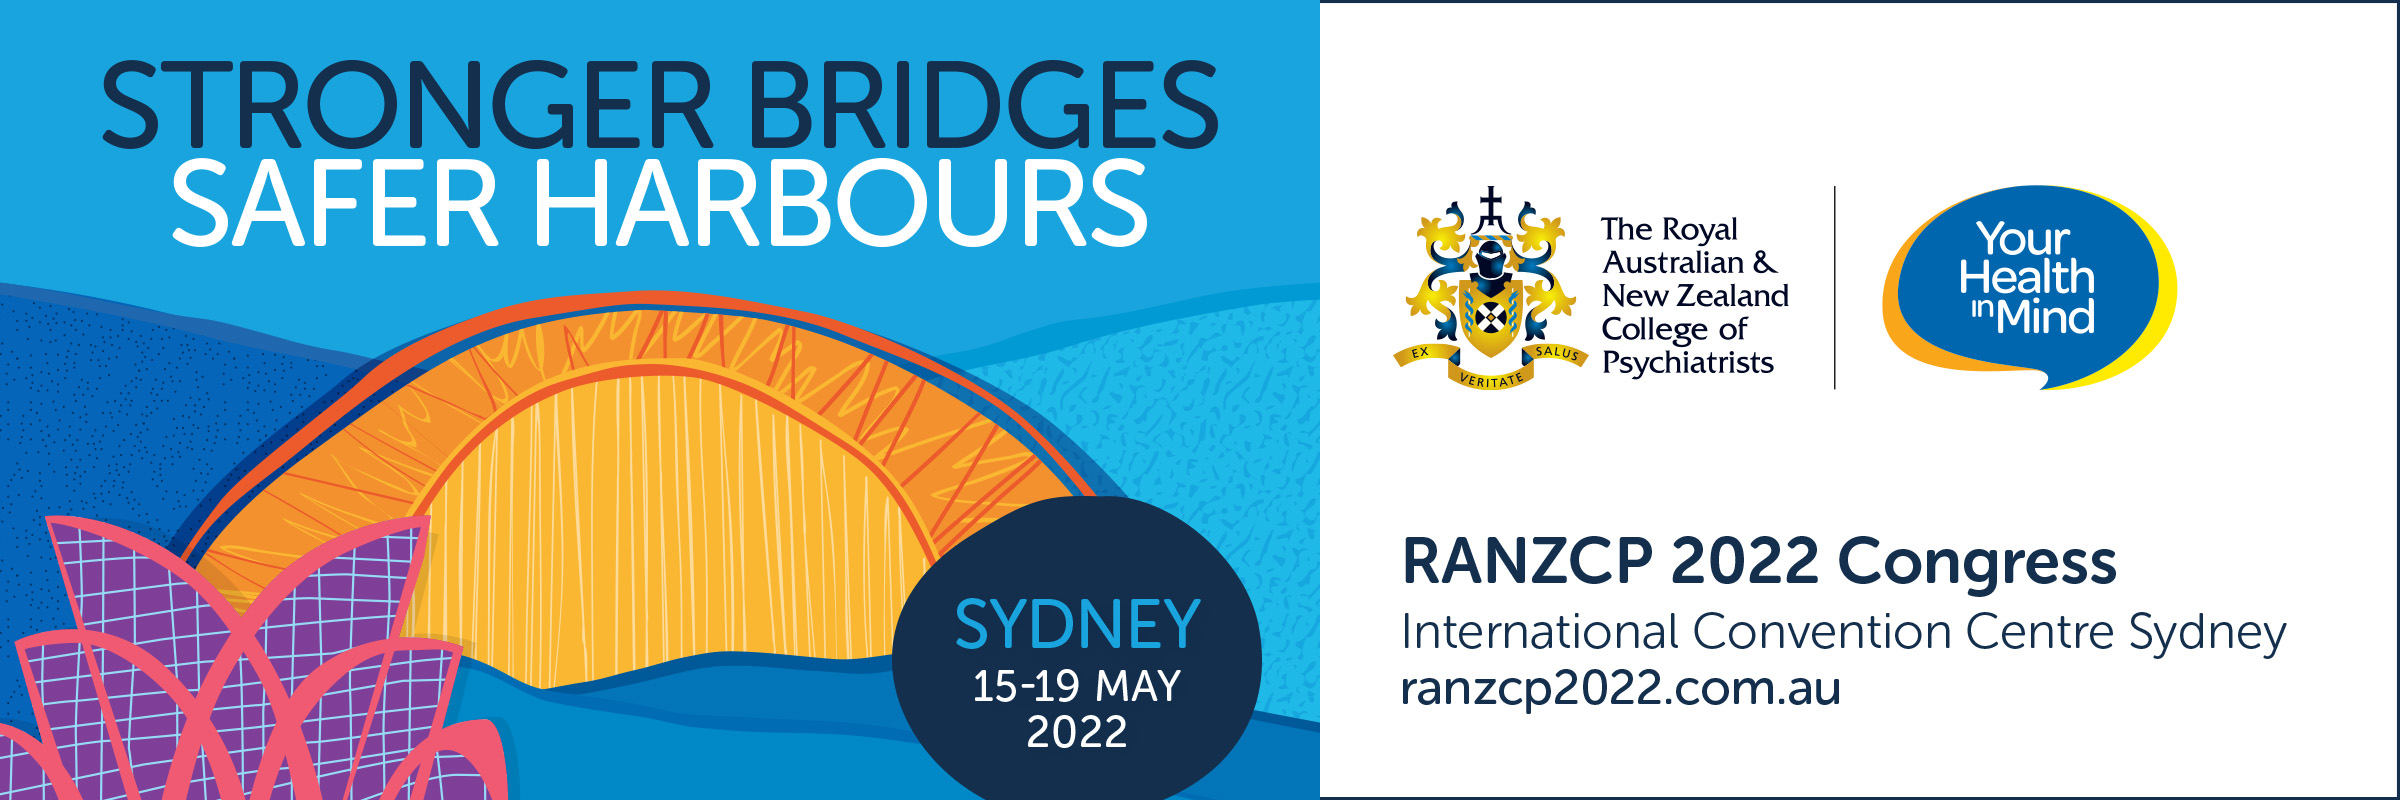 Royal Australian and New Zealand College of Psychiatrists Congress